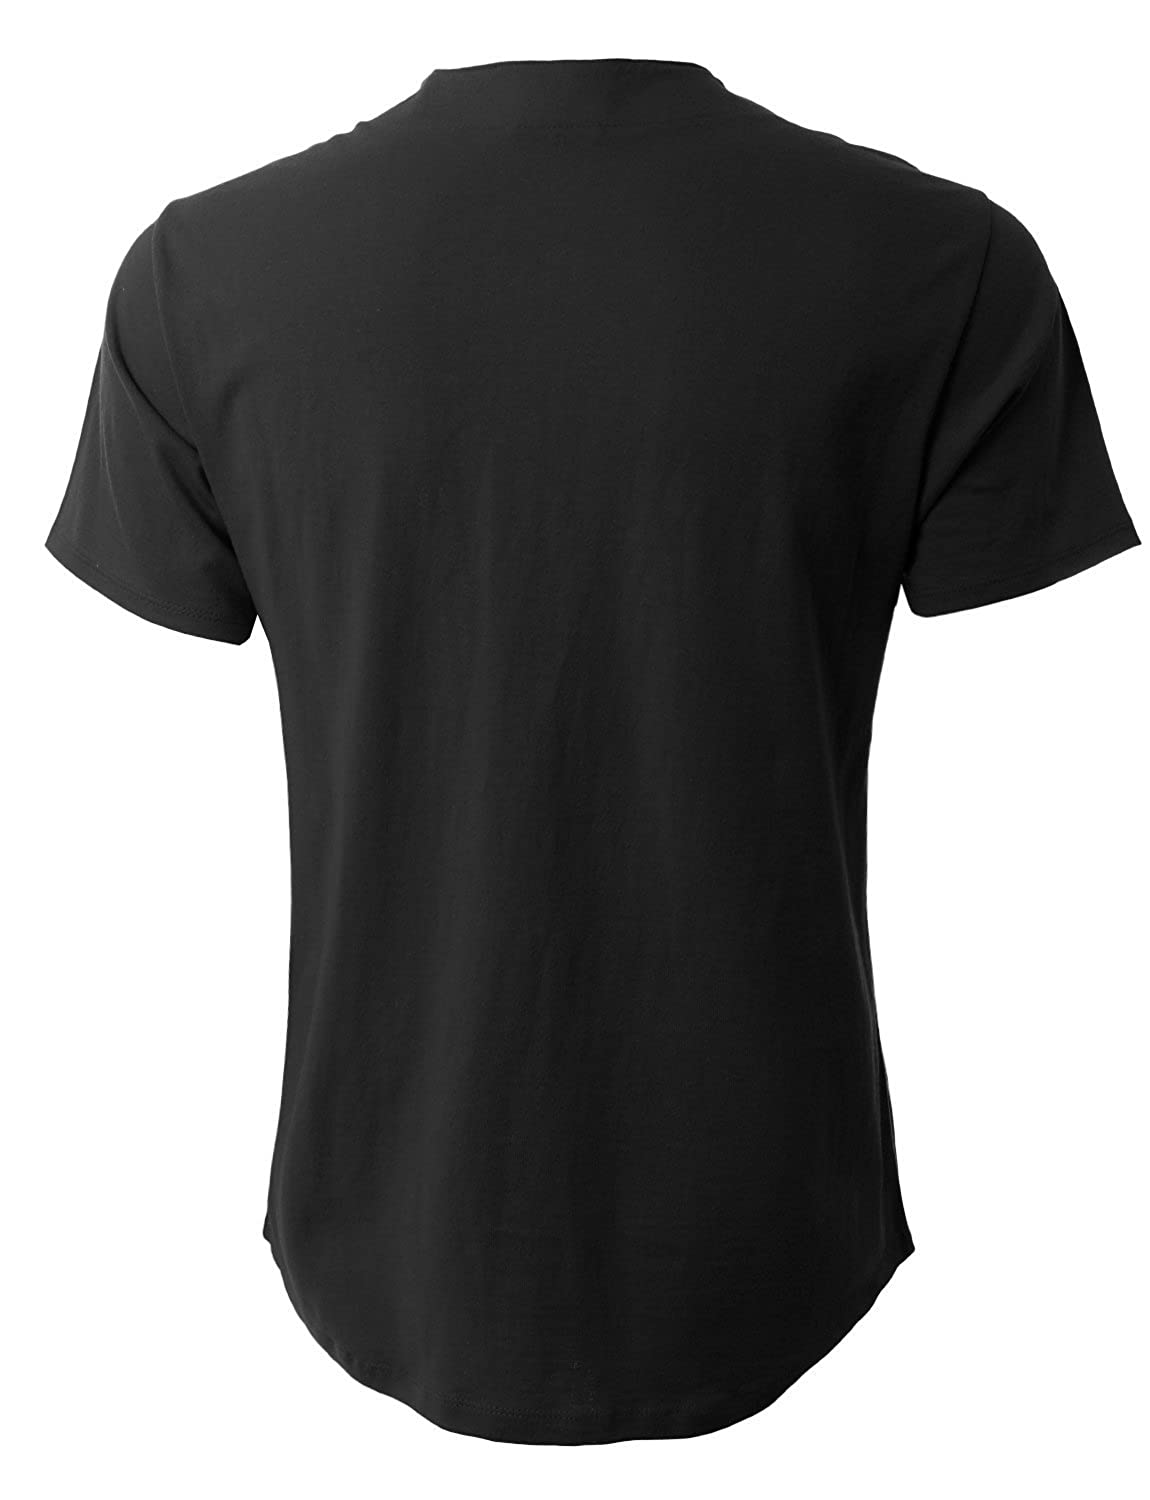 15d304cda Amazon.com: Mens Baseball Team Jersey Button Down T Shirts Plain Short  Sleeve Top: Clothing